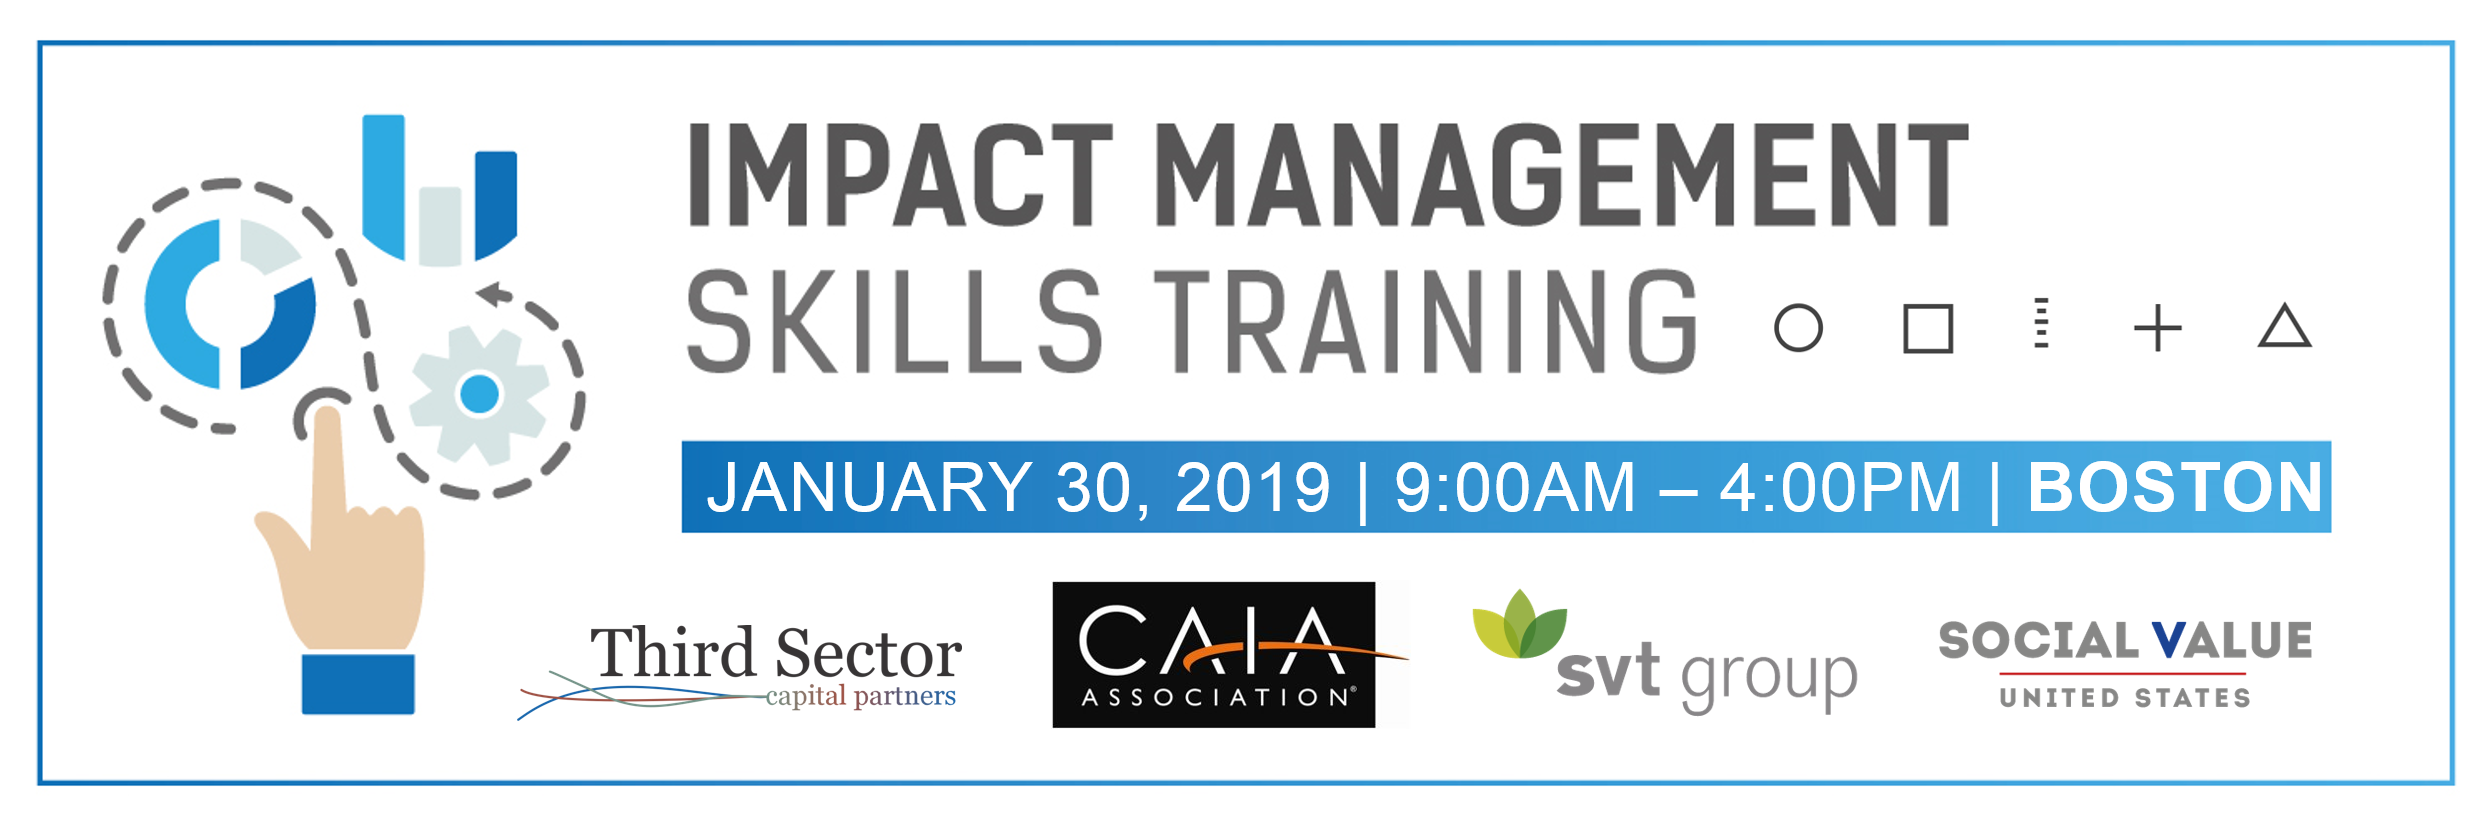 1.30.2019 Impact Management Skills Training Event.png